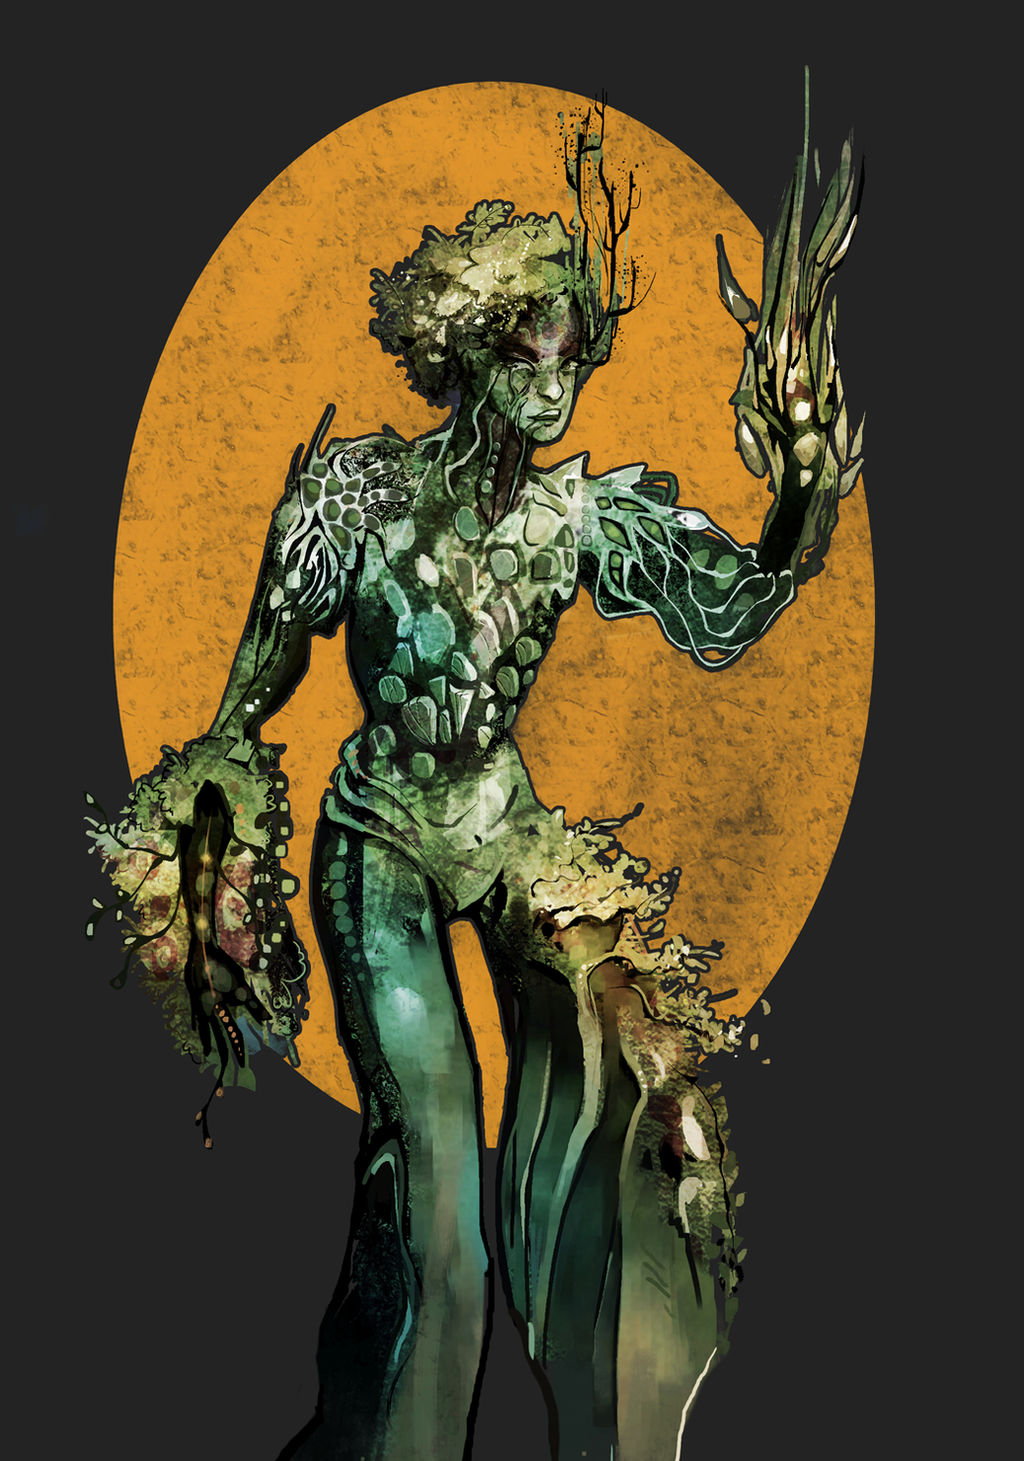 plant_person_by_natalieviola_d8xg0mg-ful